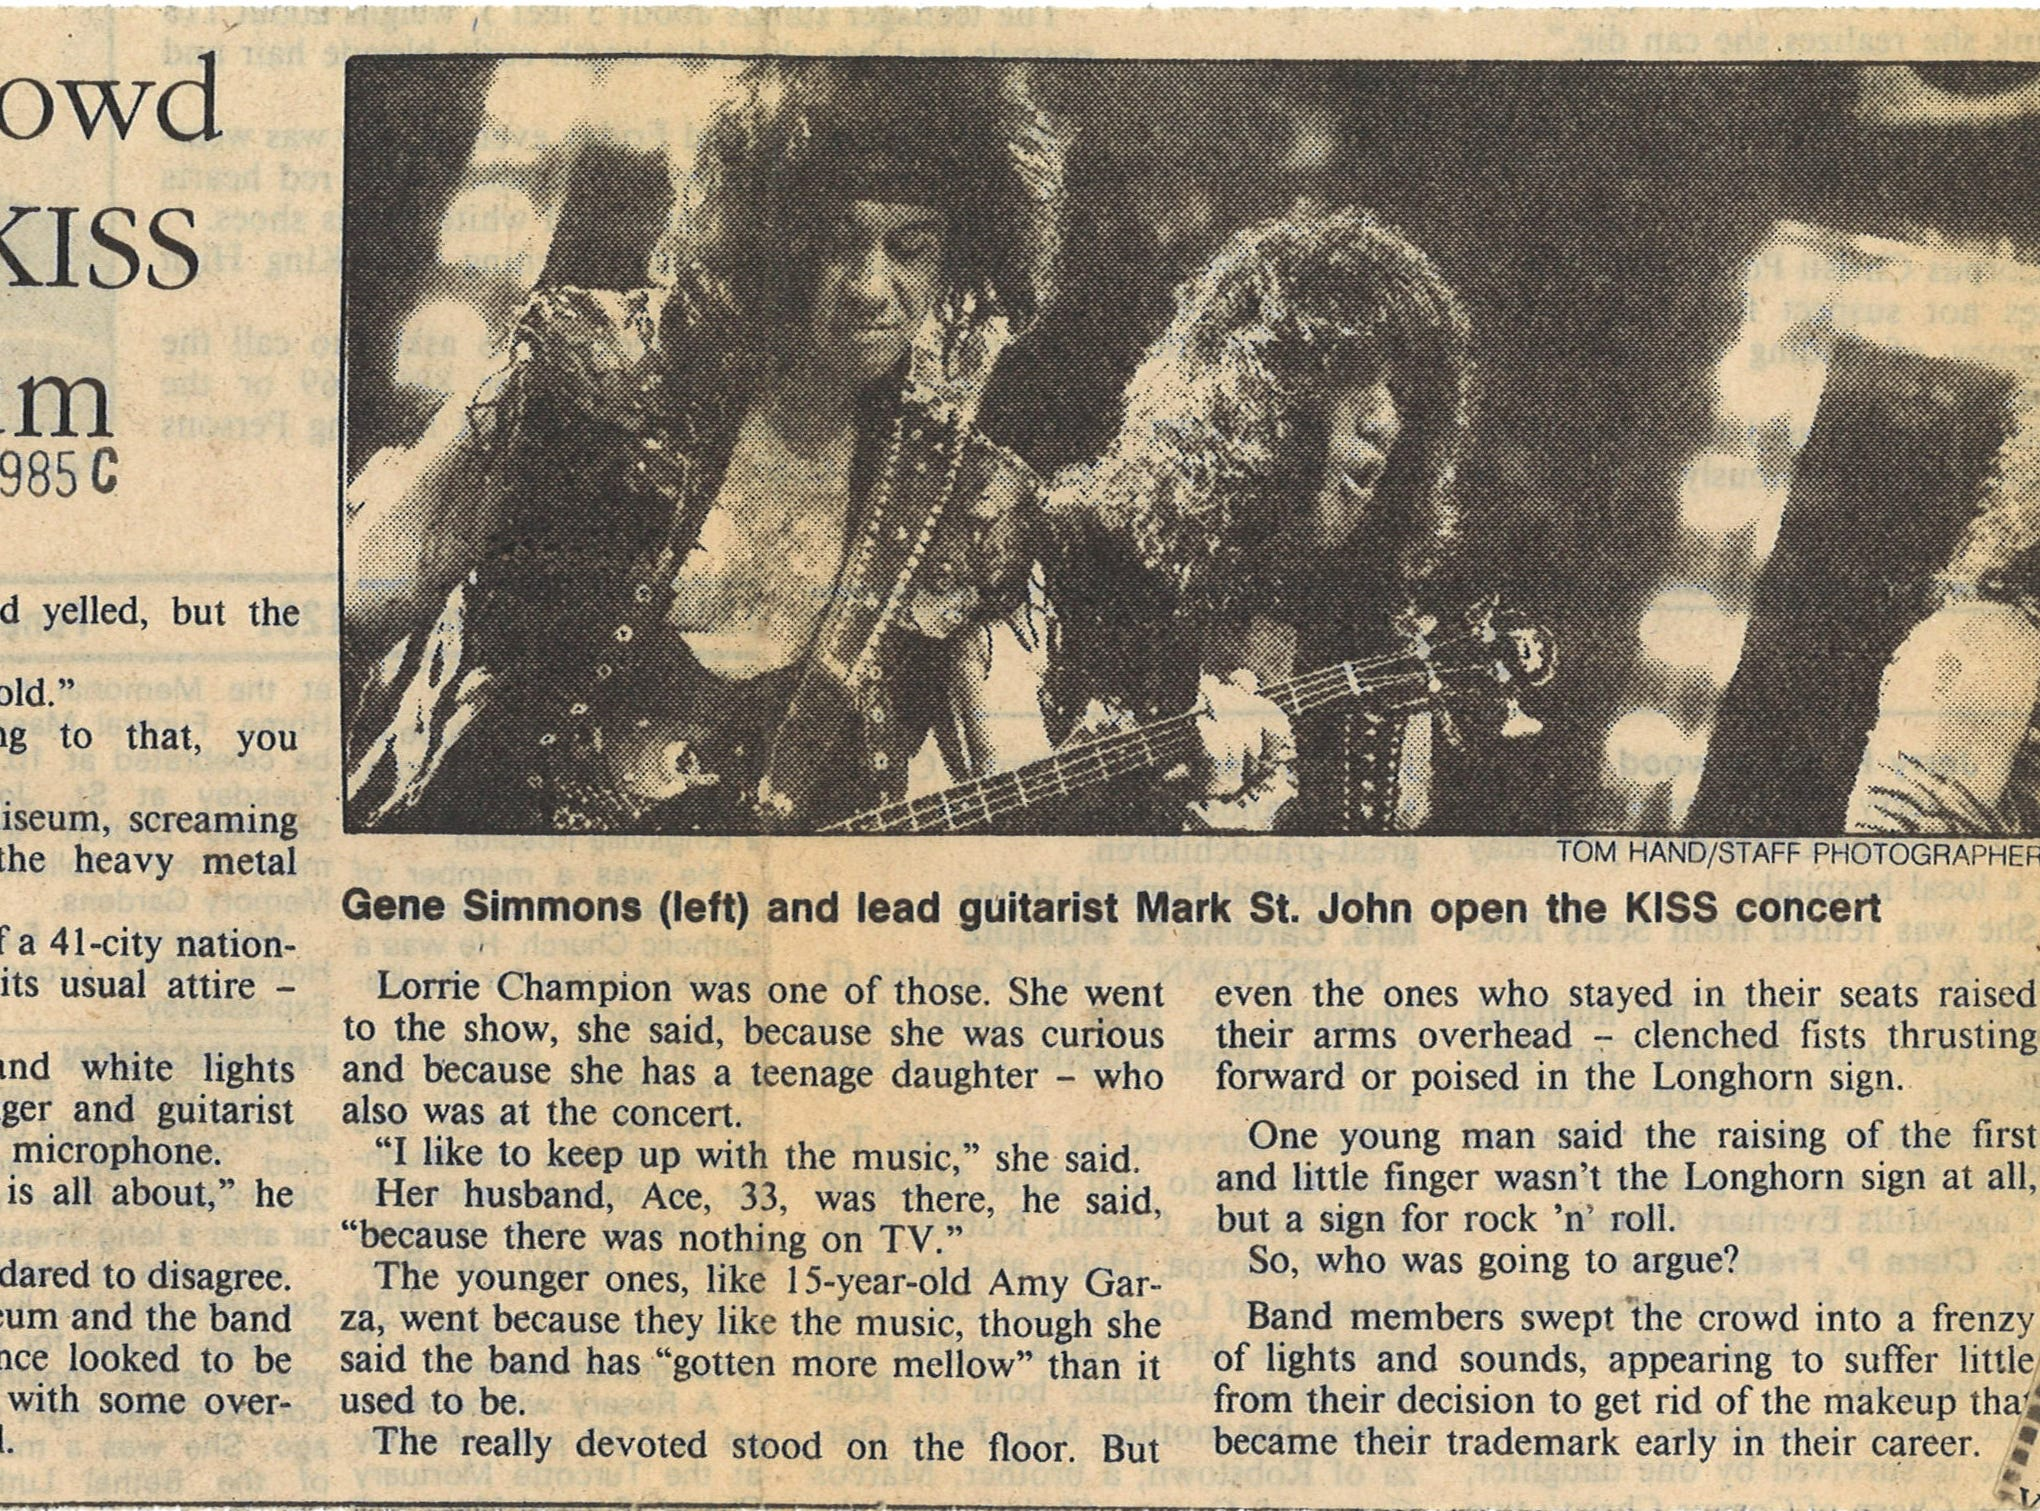 A Corpus Christi Caller-Times articles from Jan. 28, 1985 on KISS concert at Memorial Coliseum.